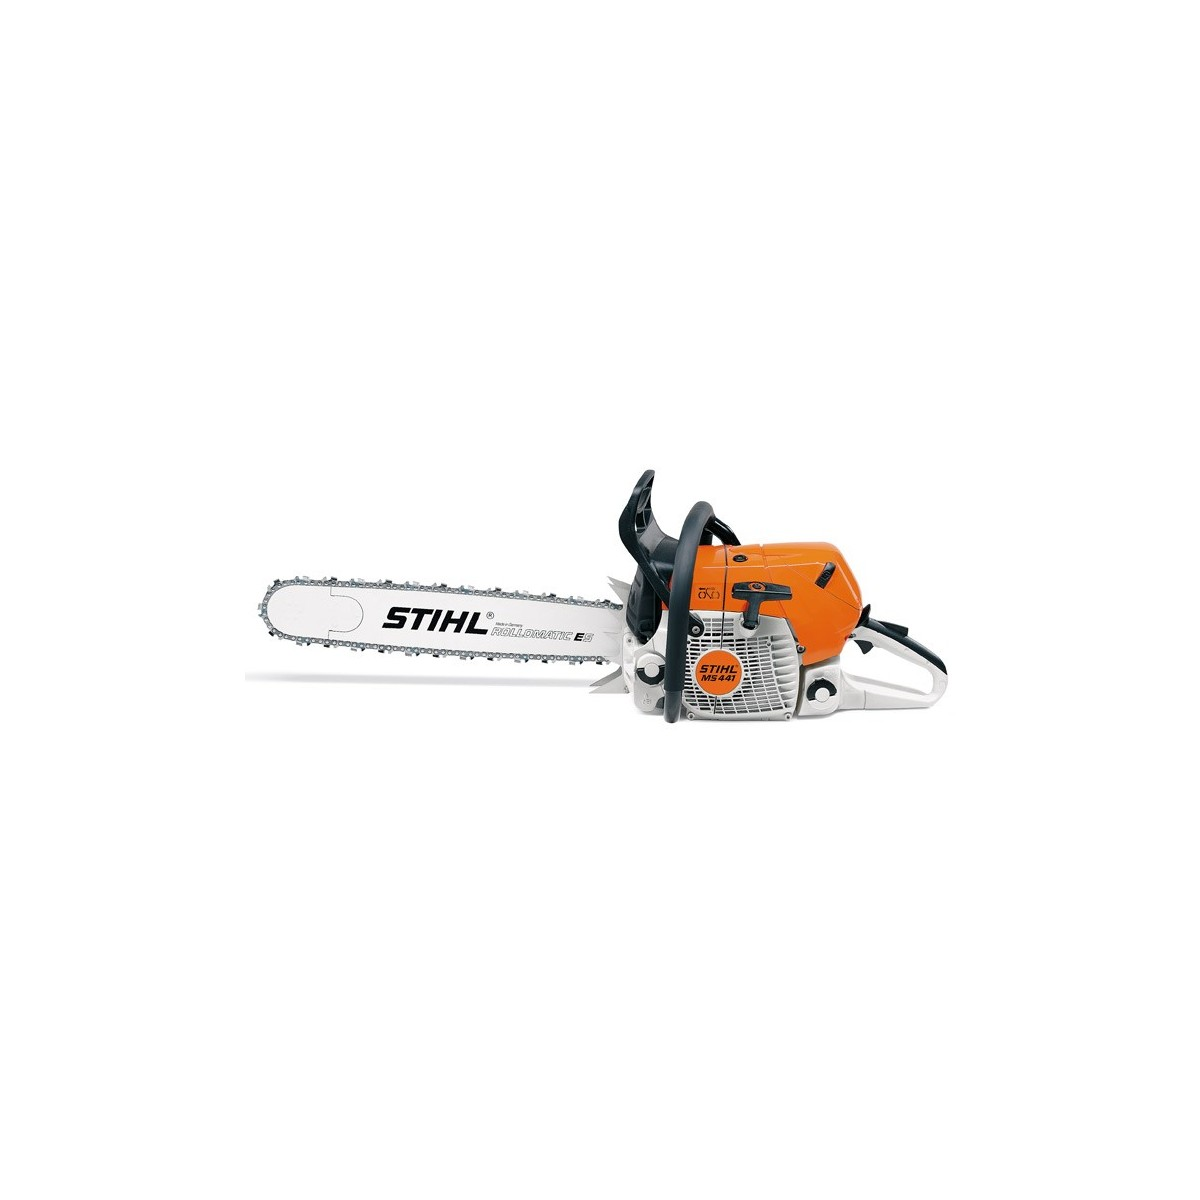 achat tronconneuse stihl ms 441 cm50cm stihl bender motoculture. Black Bedroom Furniture Sets. Home Design Ideas